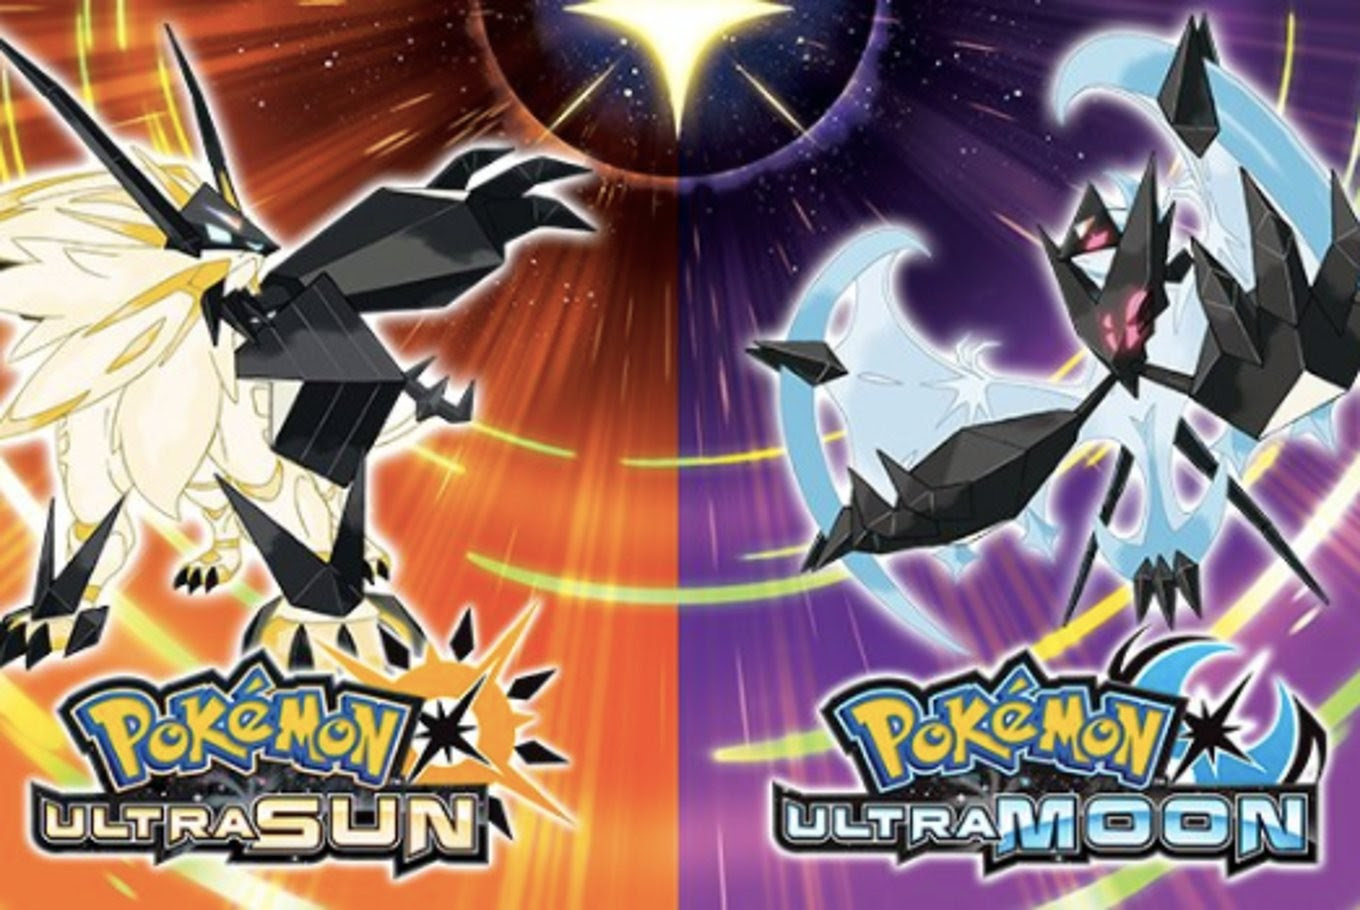 \u2018Pok\u00e9mon Ultra Sun\u2019 and \u2018Ultra Moon\u2019 coming to Nintendo